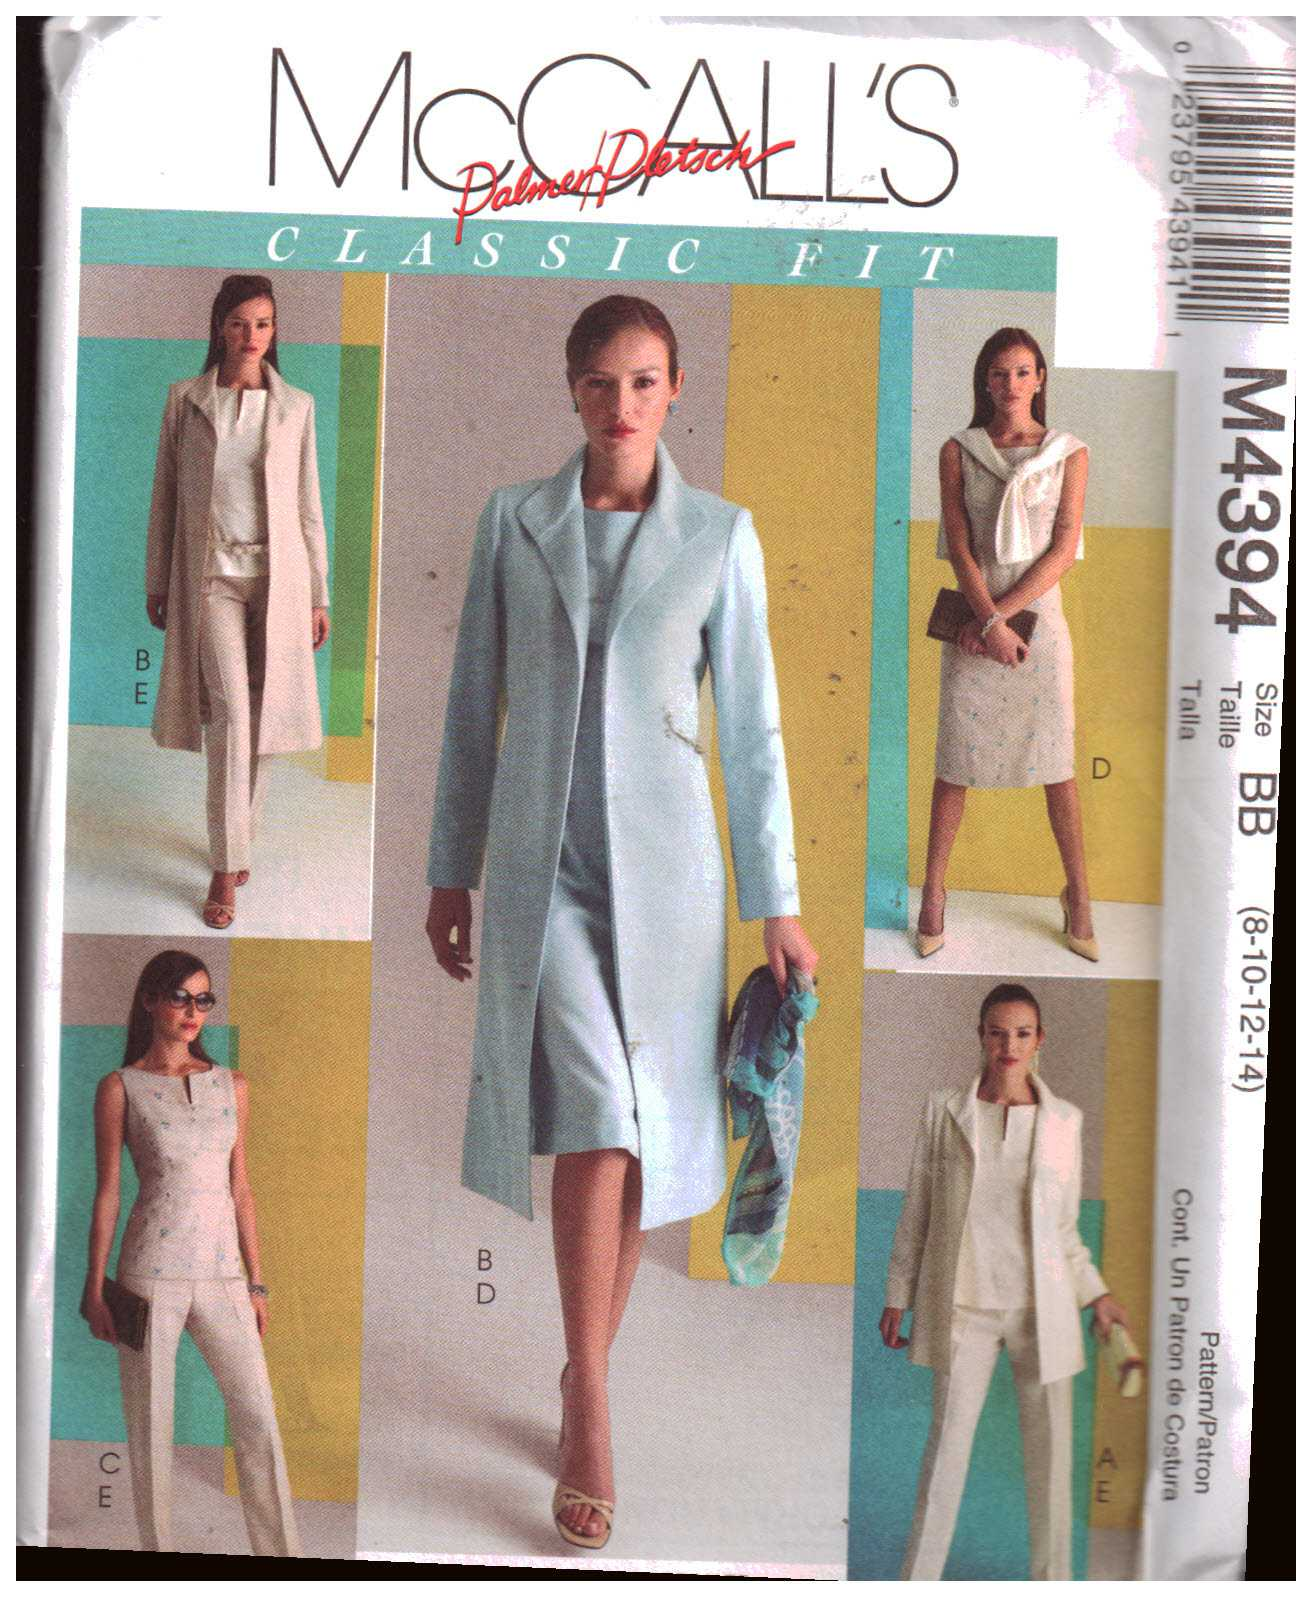 NEW McCALLS SEWING PATTERN R10450 M8048 MISSES JACKETS Sz 14-16-18-20-22